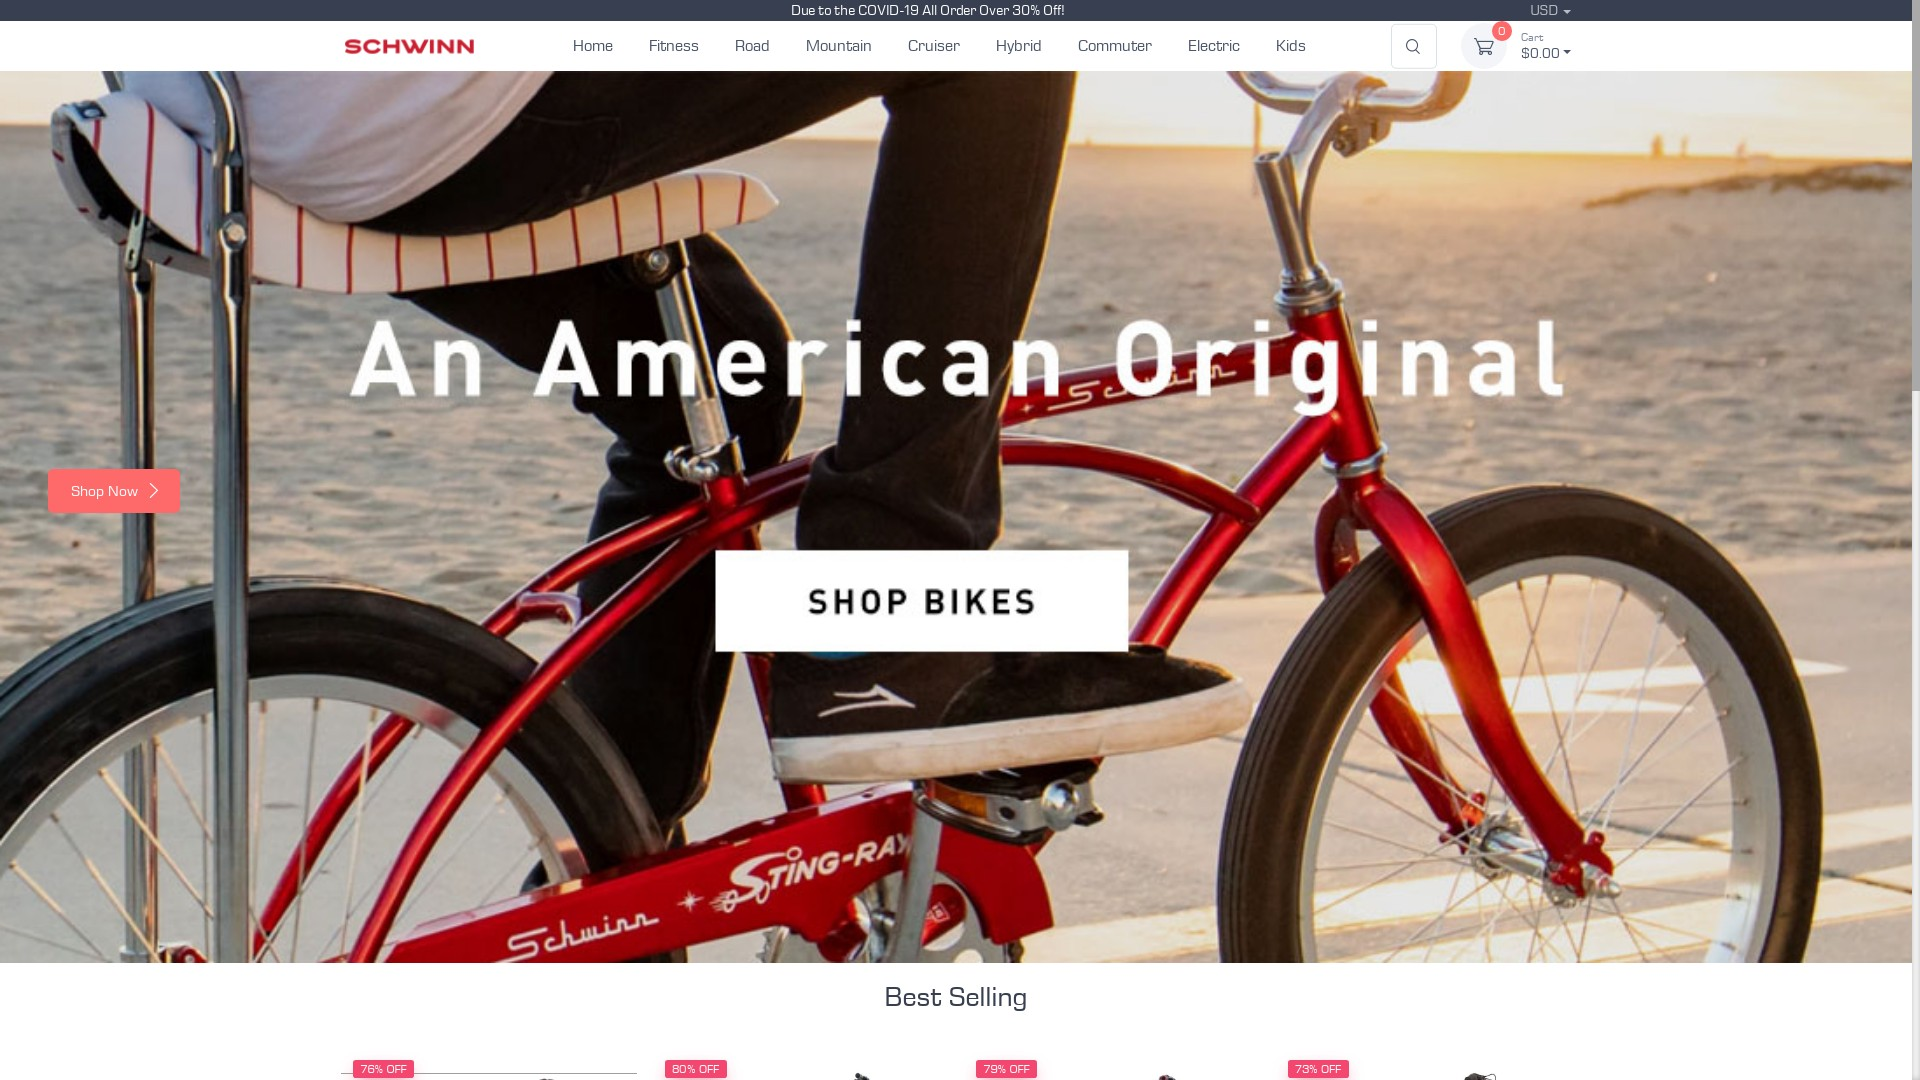 Aviafun Store Reviews  is The Online Store a Scam?